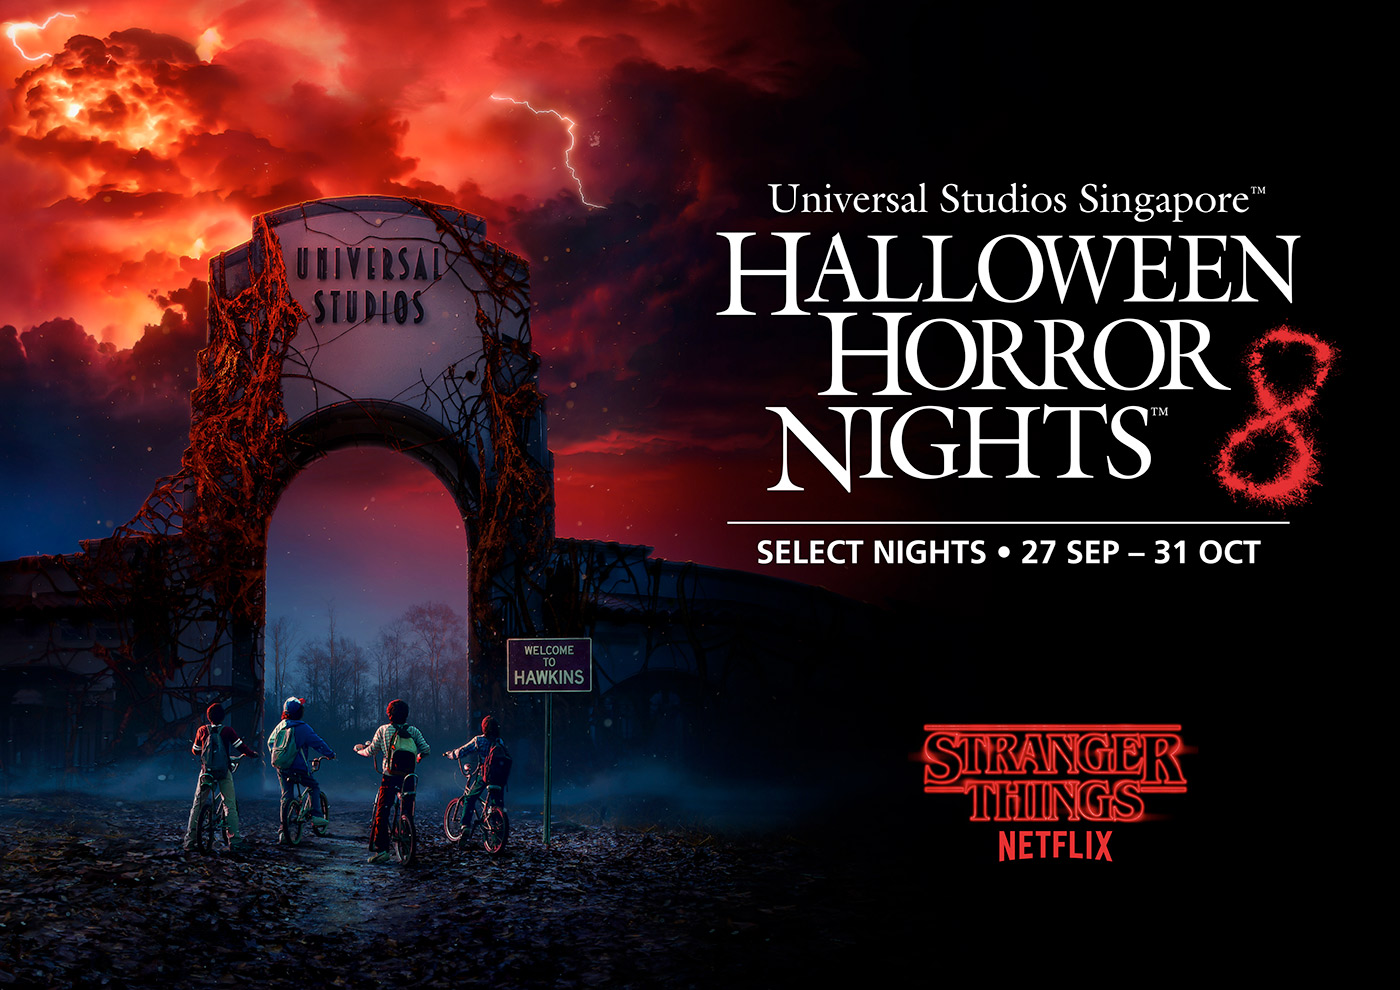 Stranger Things at USS Halloween Horror Nights 8 - Read all about it at Dejiki.com Full HHN8 Event Line-Up and Ticketing Information